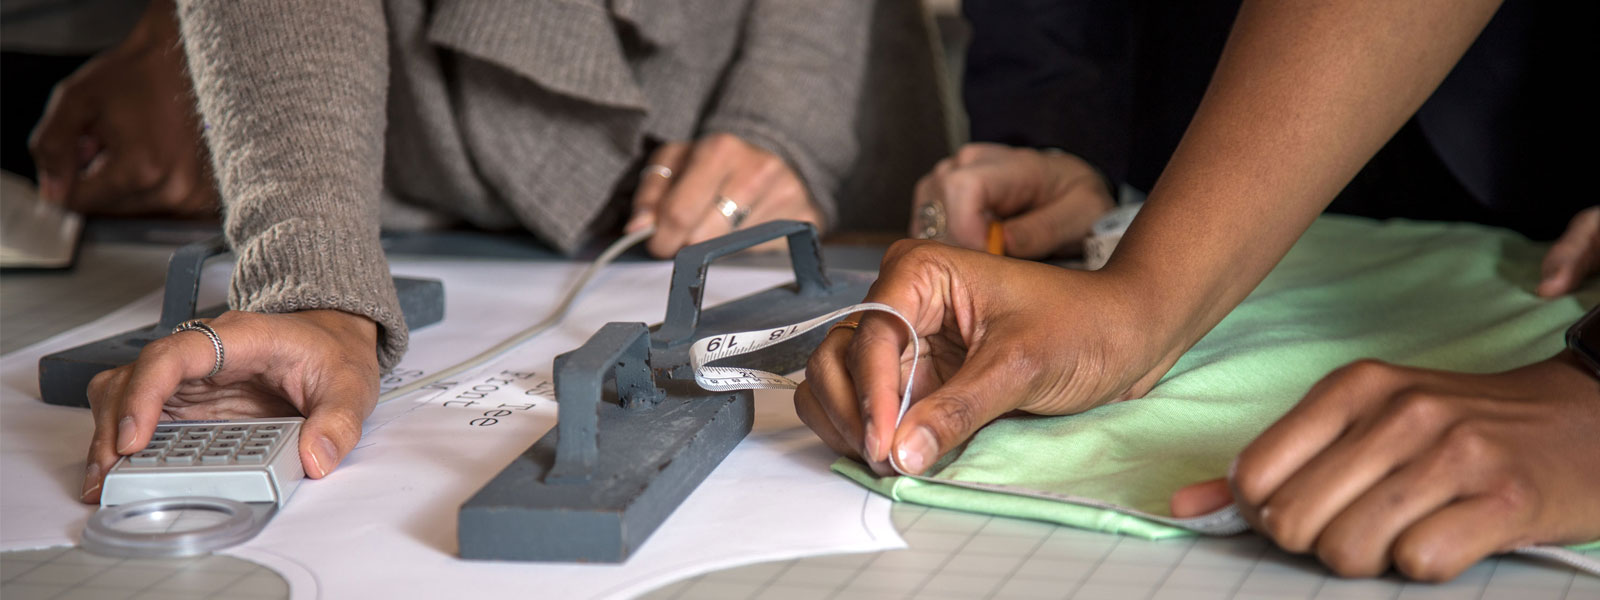 Close-up shot of students measuring material in workshop